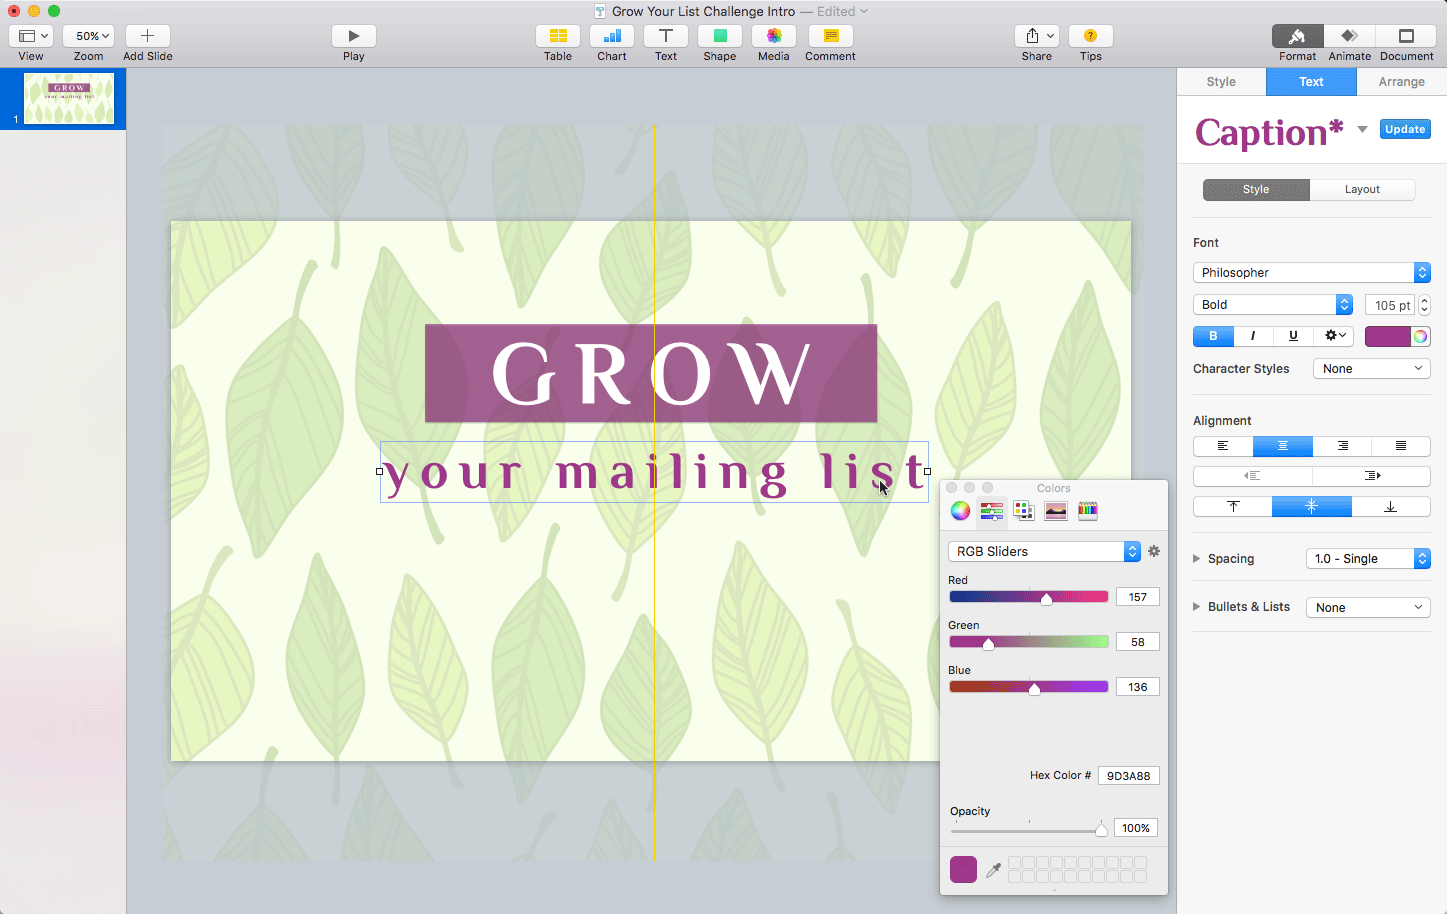 Keynote: Adding the 'your mailing list' text